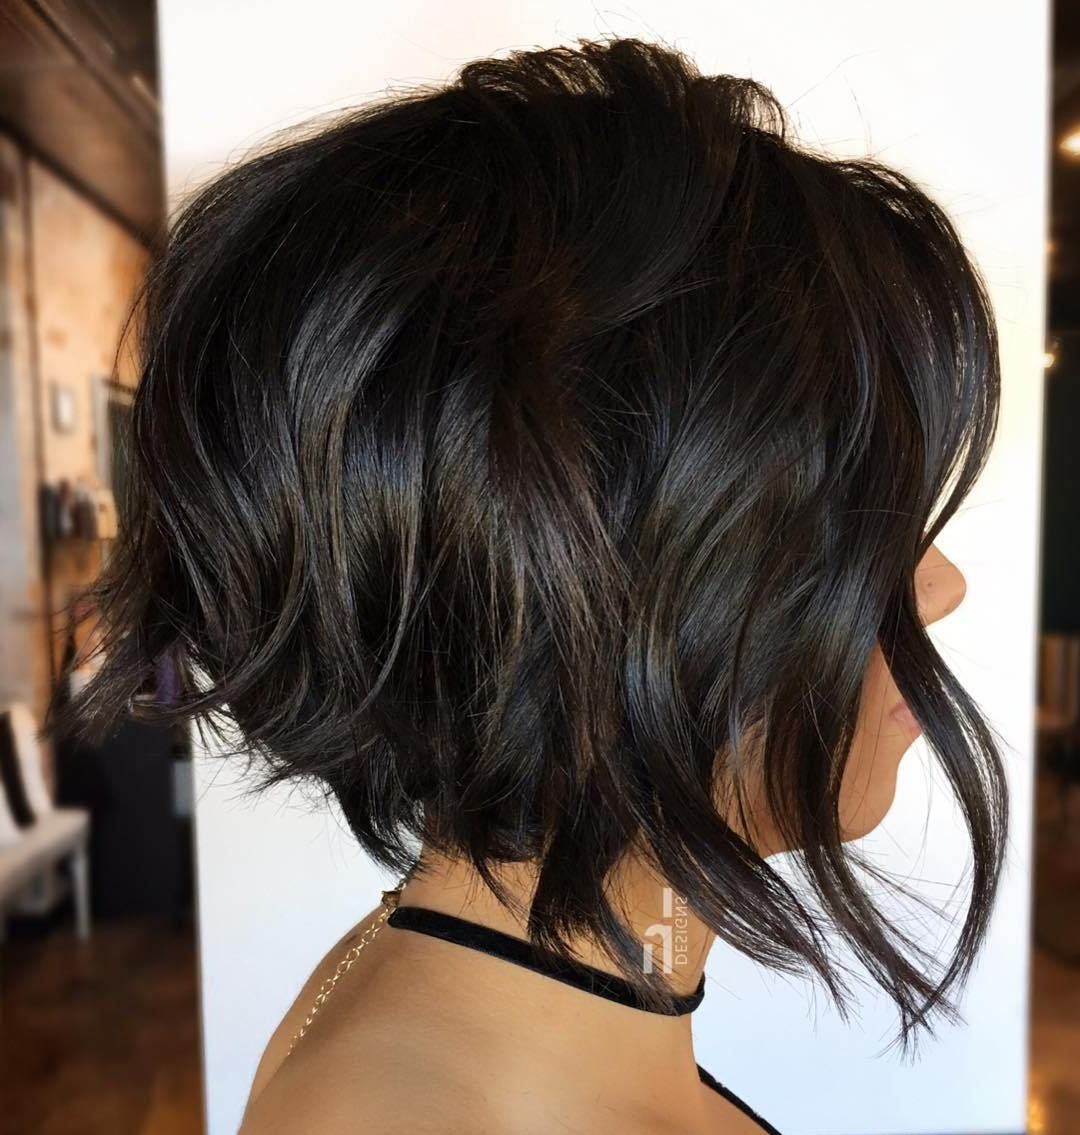 70 Best A Line Bob Hairstyles Screaming With Class And Style With Regard To Short Sliced Inverted Bob Hairstyles (View 12 of 20)